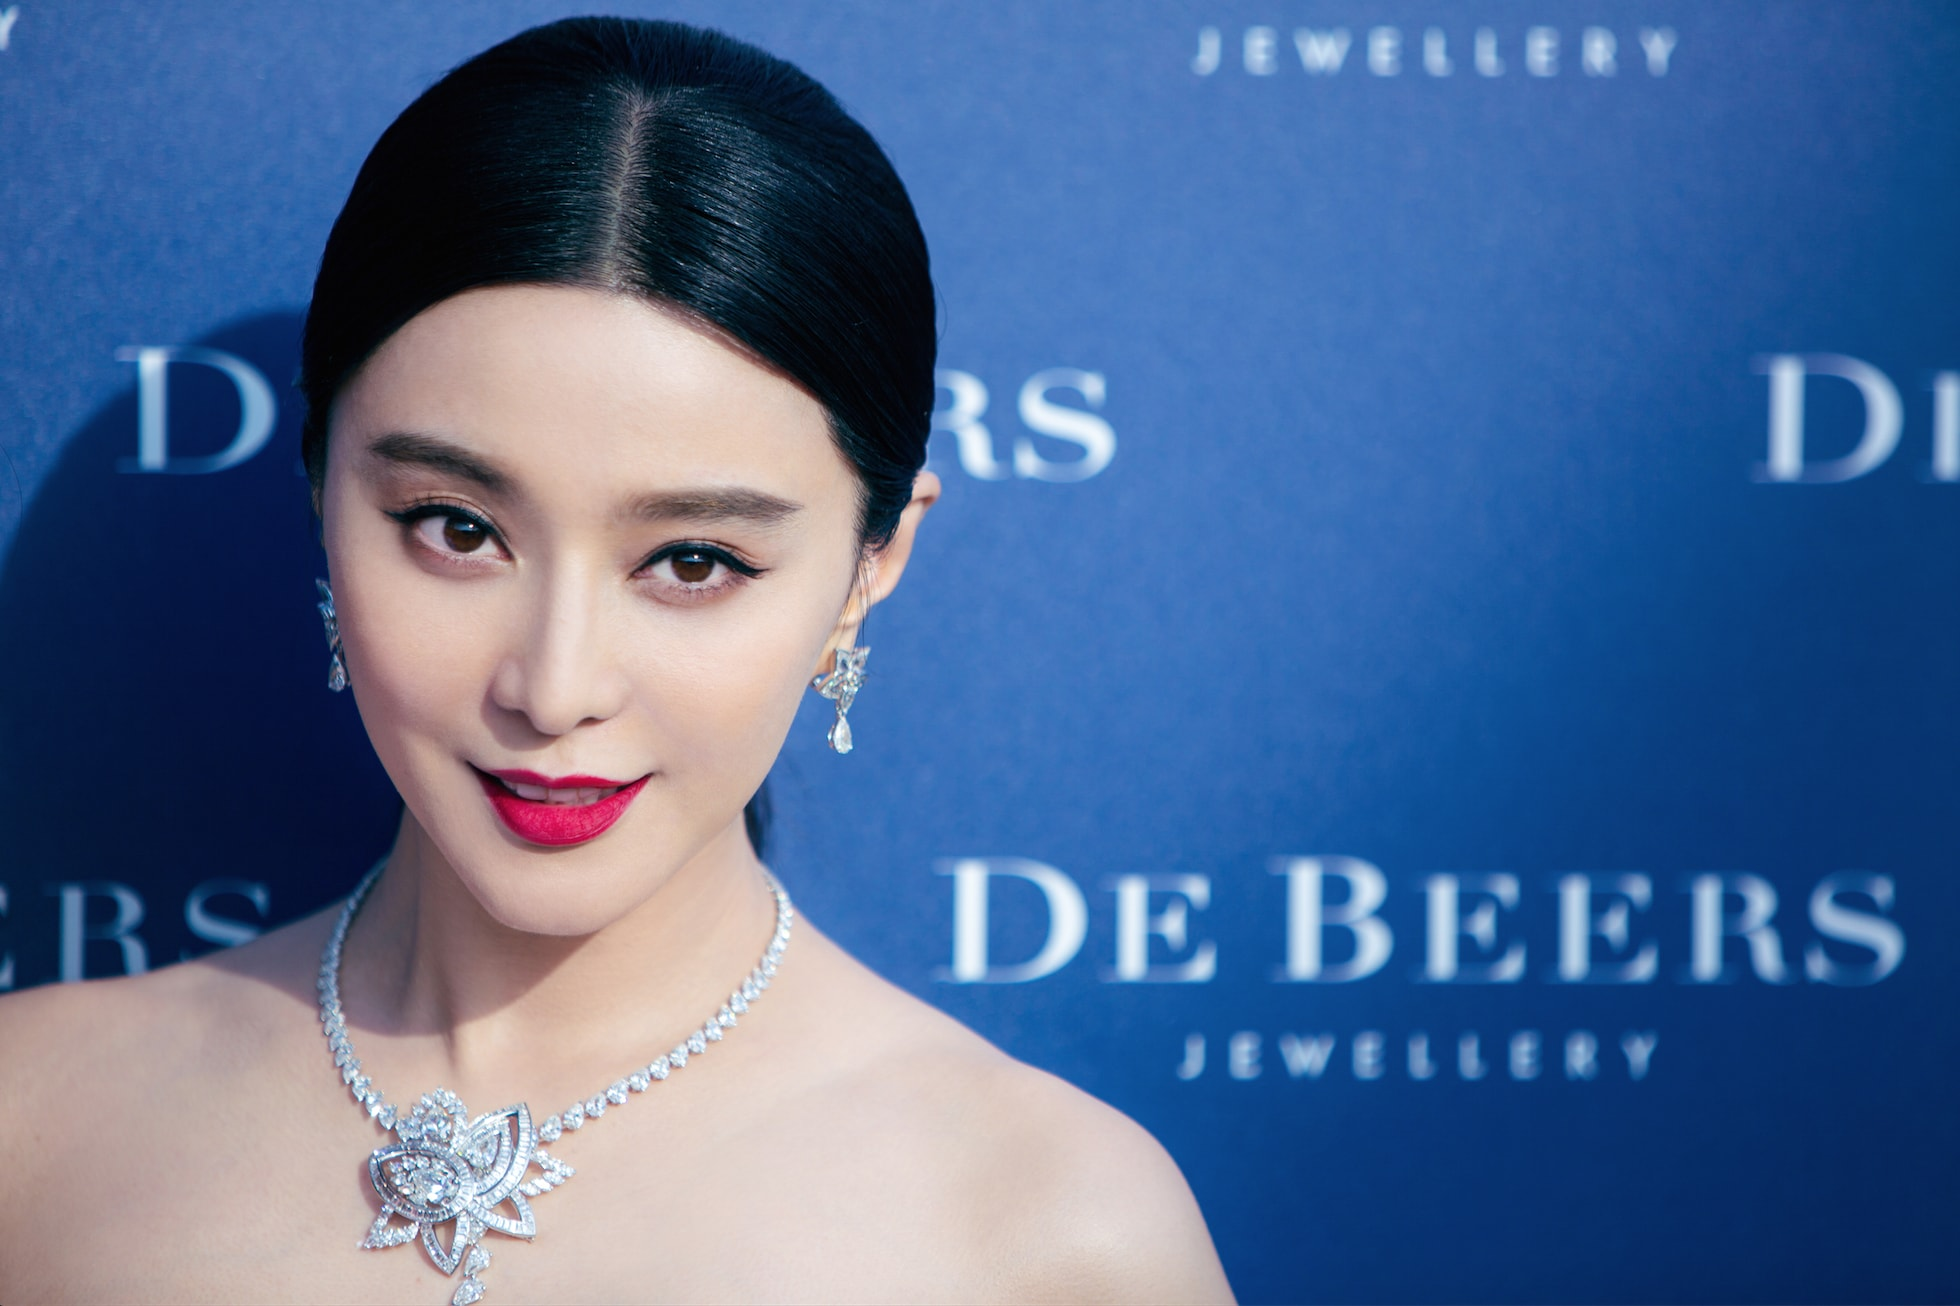 De Beers Jewellery - Fan Bing Bing for Lotus Collection